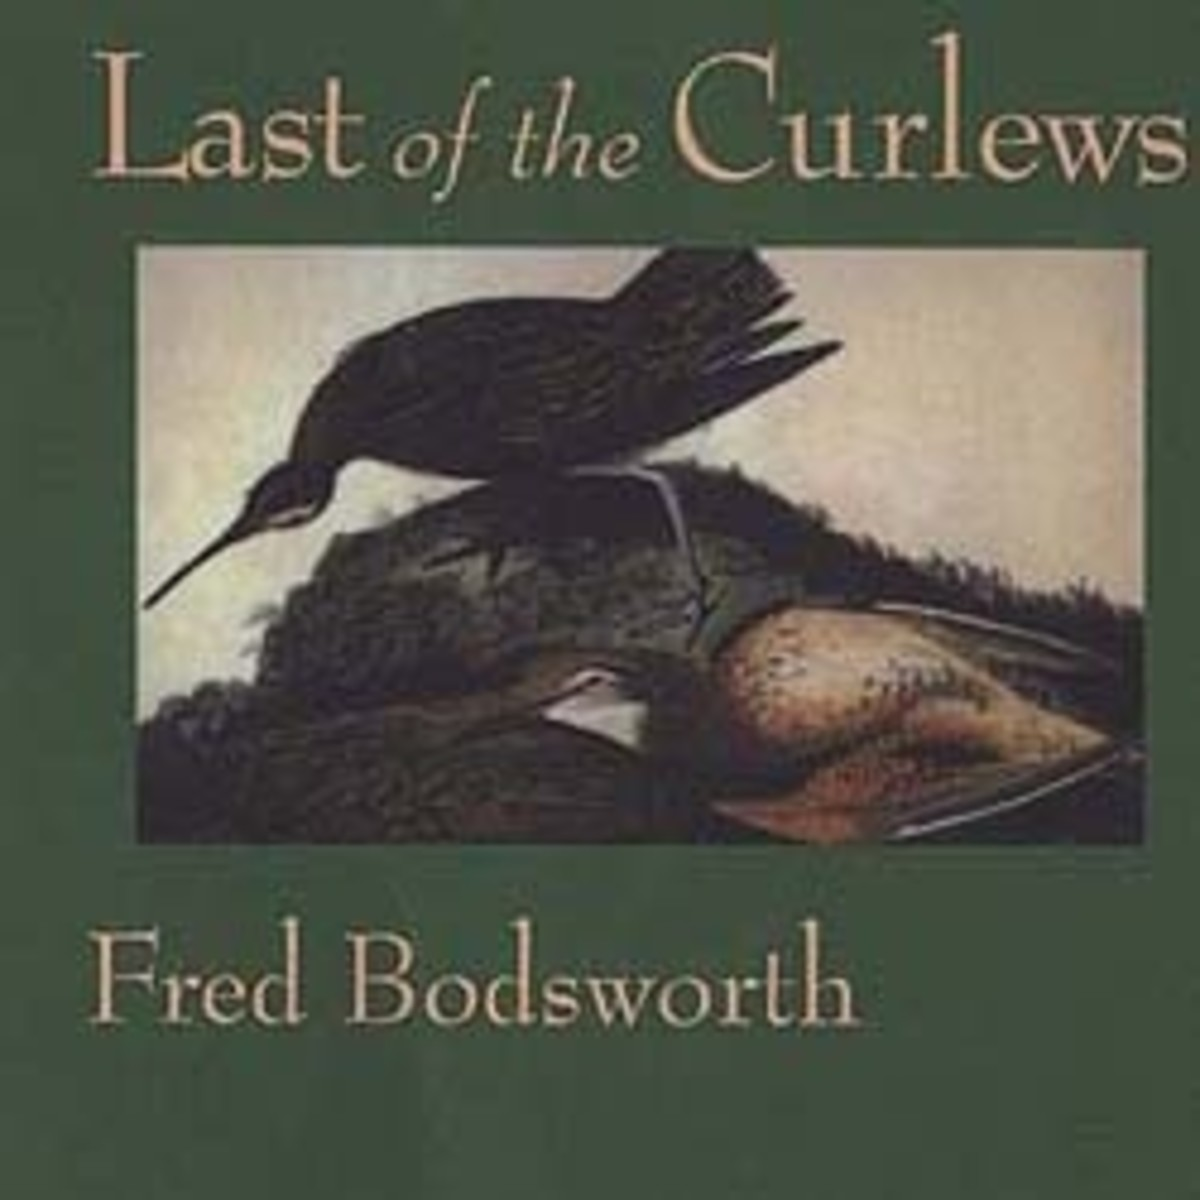 My copy of Last of the Curlews